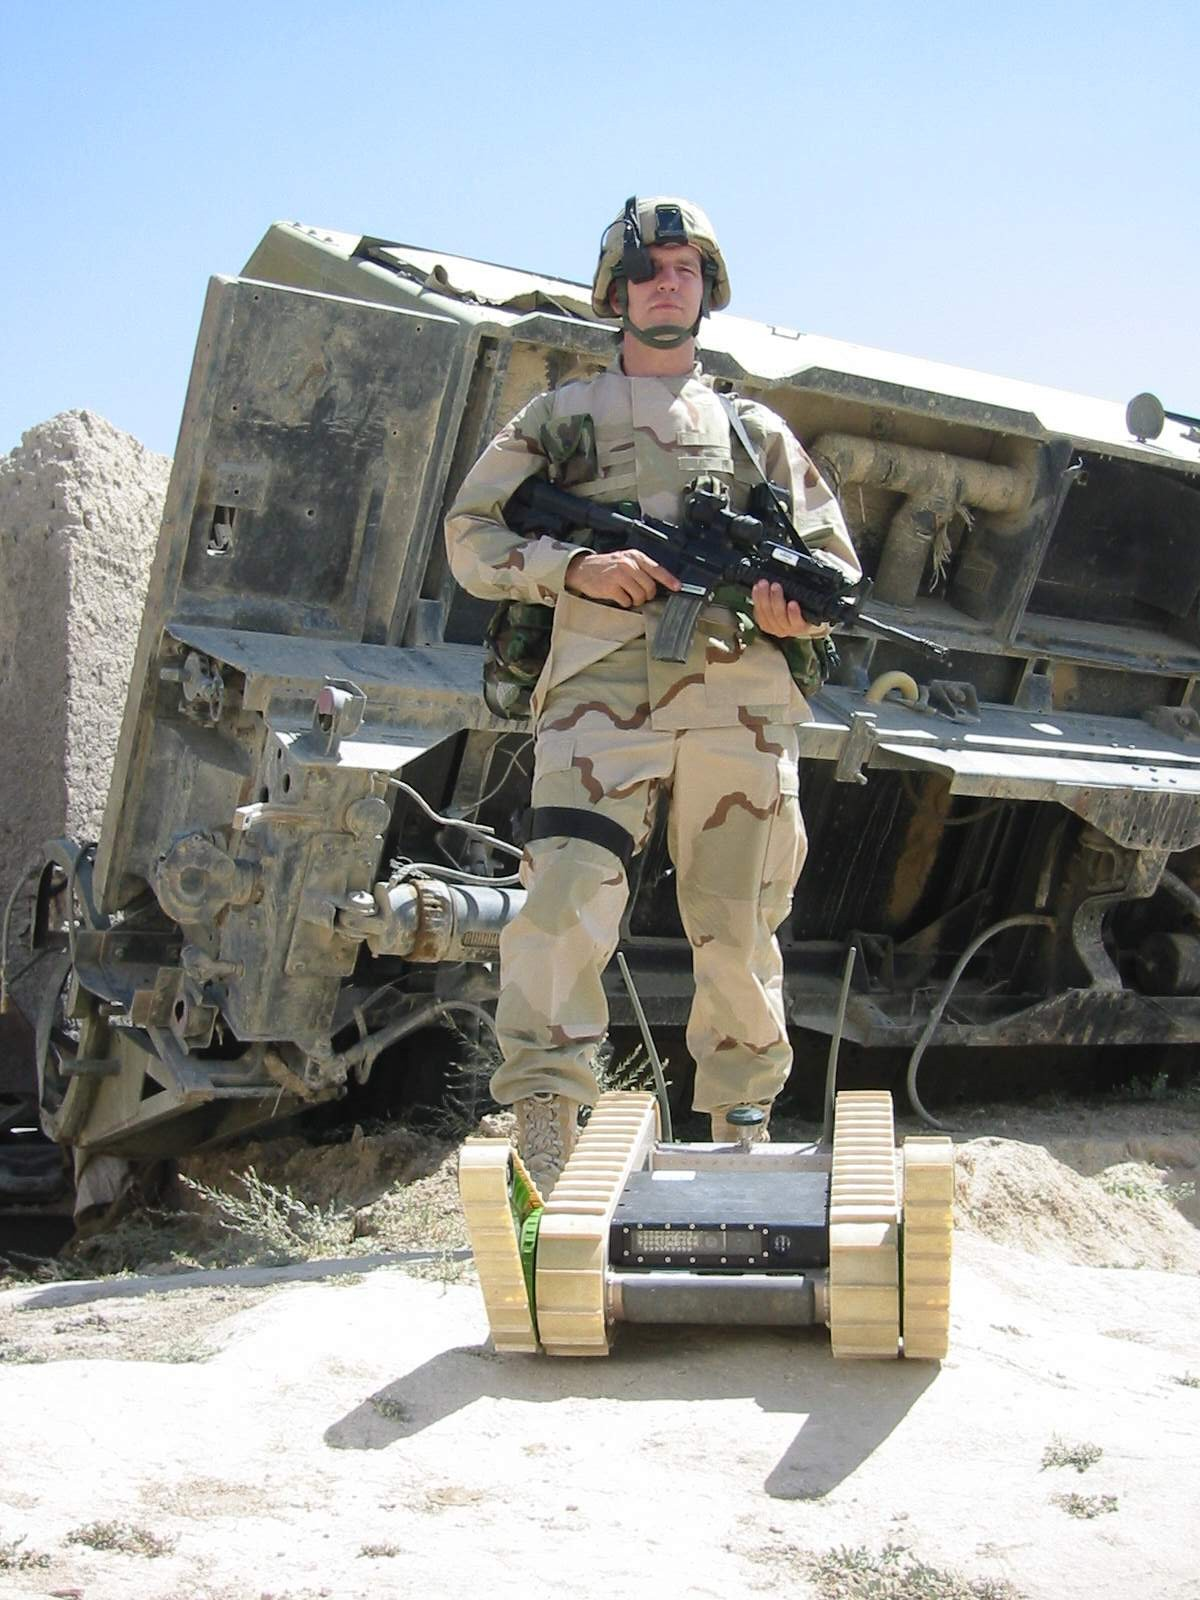 PackBot Afghanistan Soldier <!  :en  >More iRobot Packbot Robotic Infantry Soldiers Headed to Afghanistan and Iraq<!  :  >